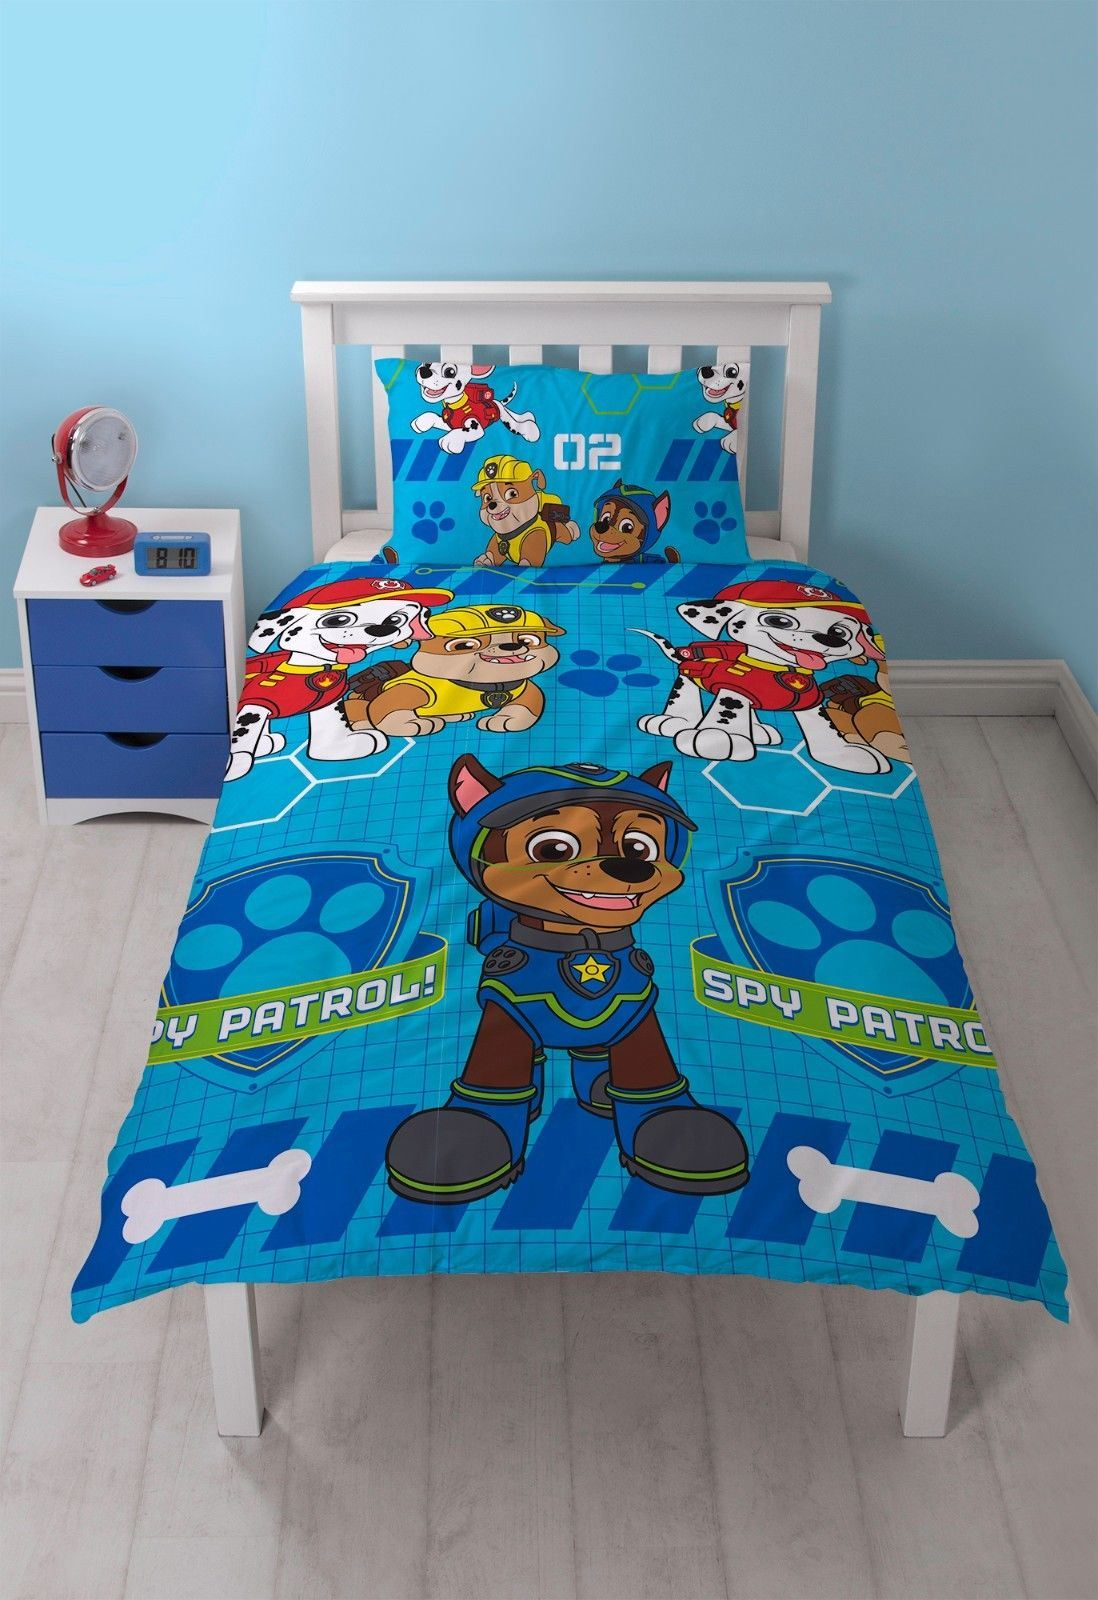 Official-Paw-Patrol-Licensed-Duvet-Covers-Single-Double-Chase-Skye-Marshall thumbnail 36